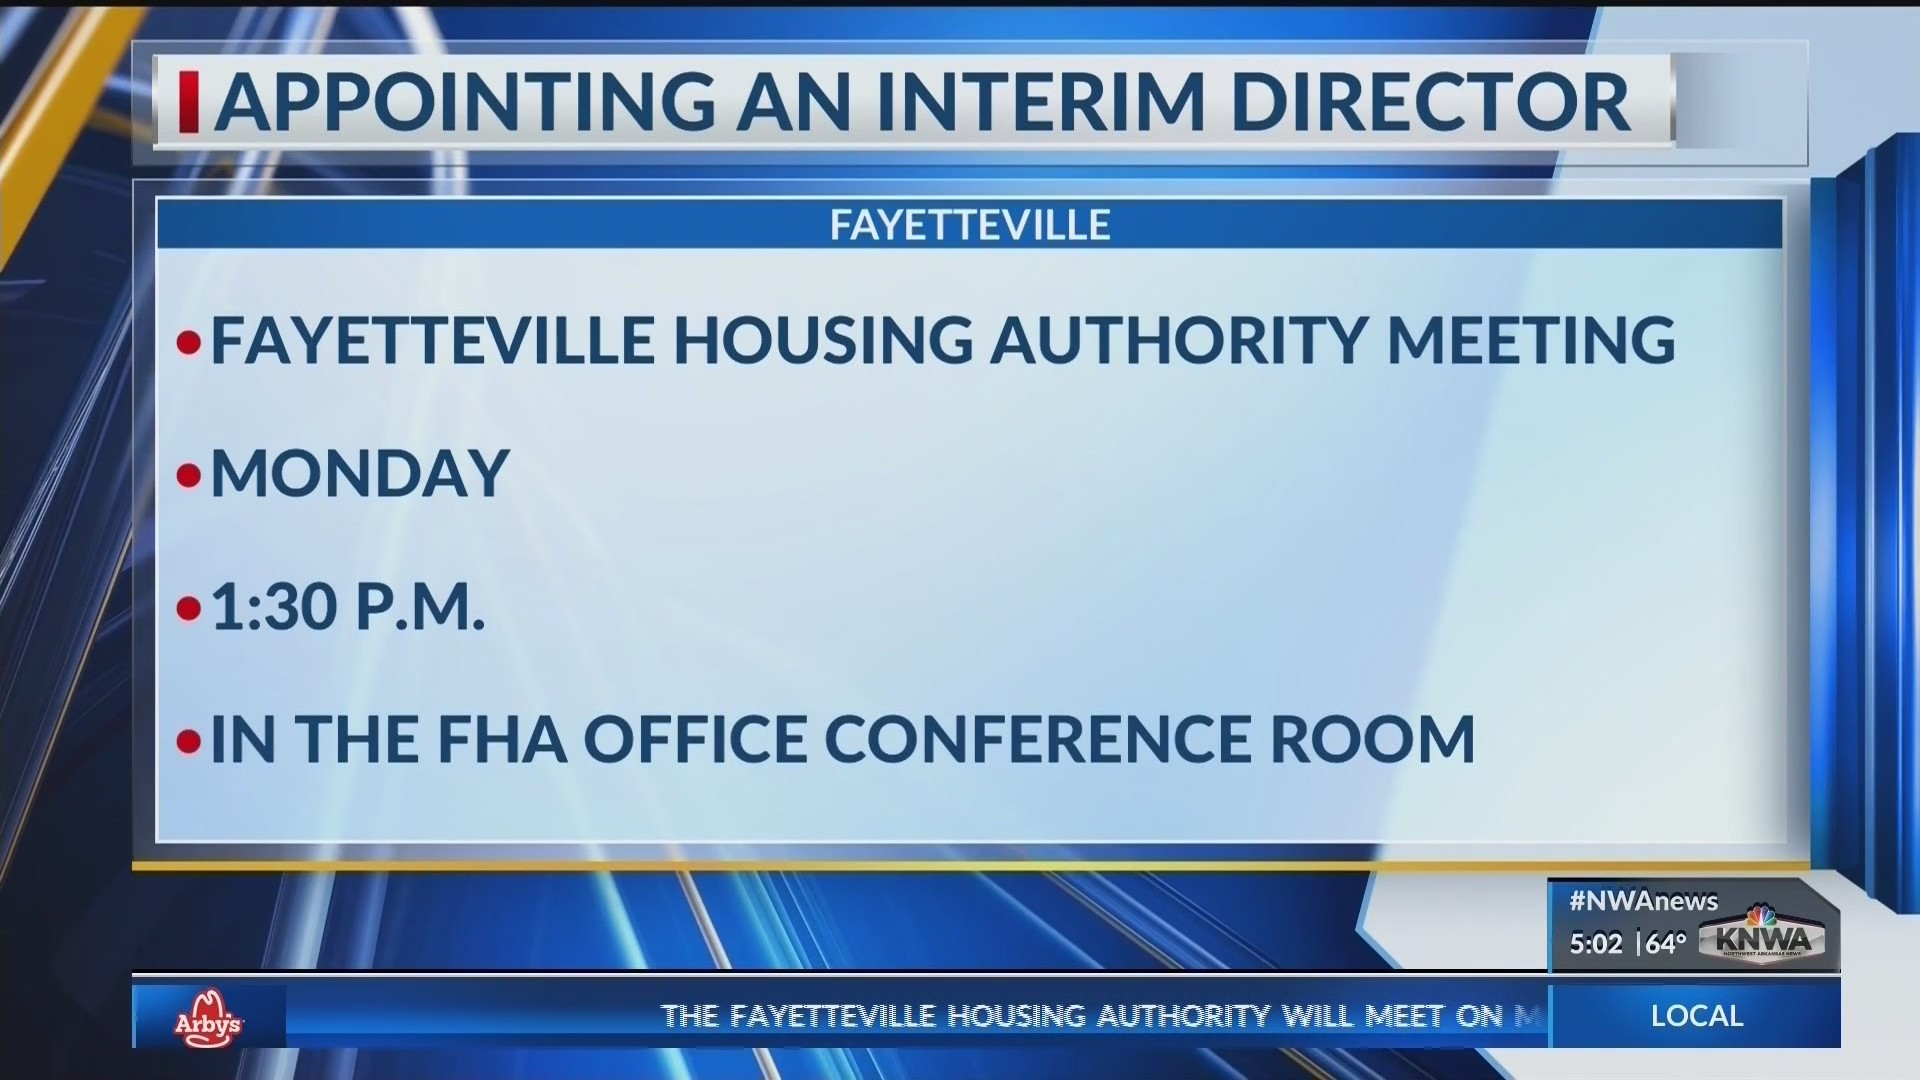 Fayetteville_Housing_Authority_to_Appoin_0_20180924114002